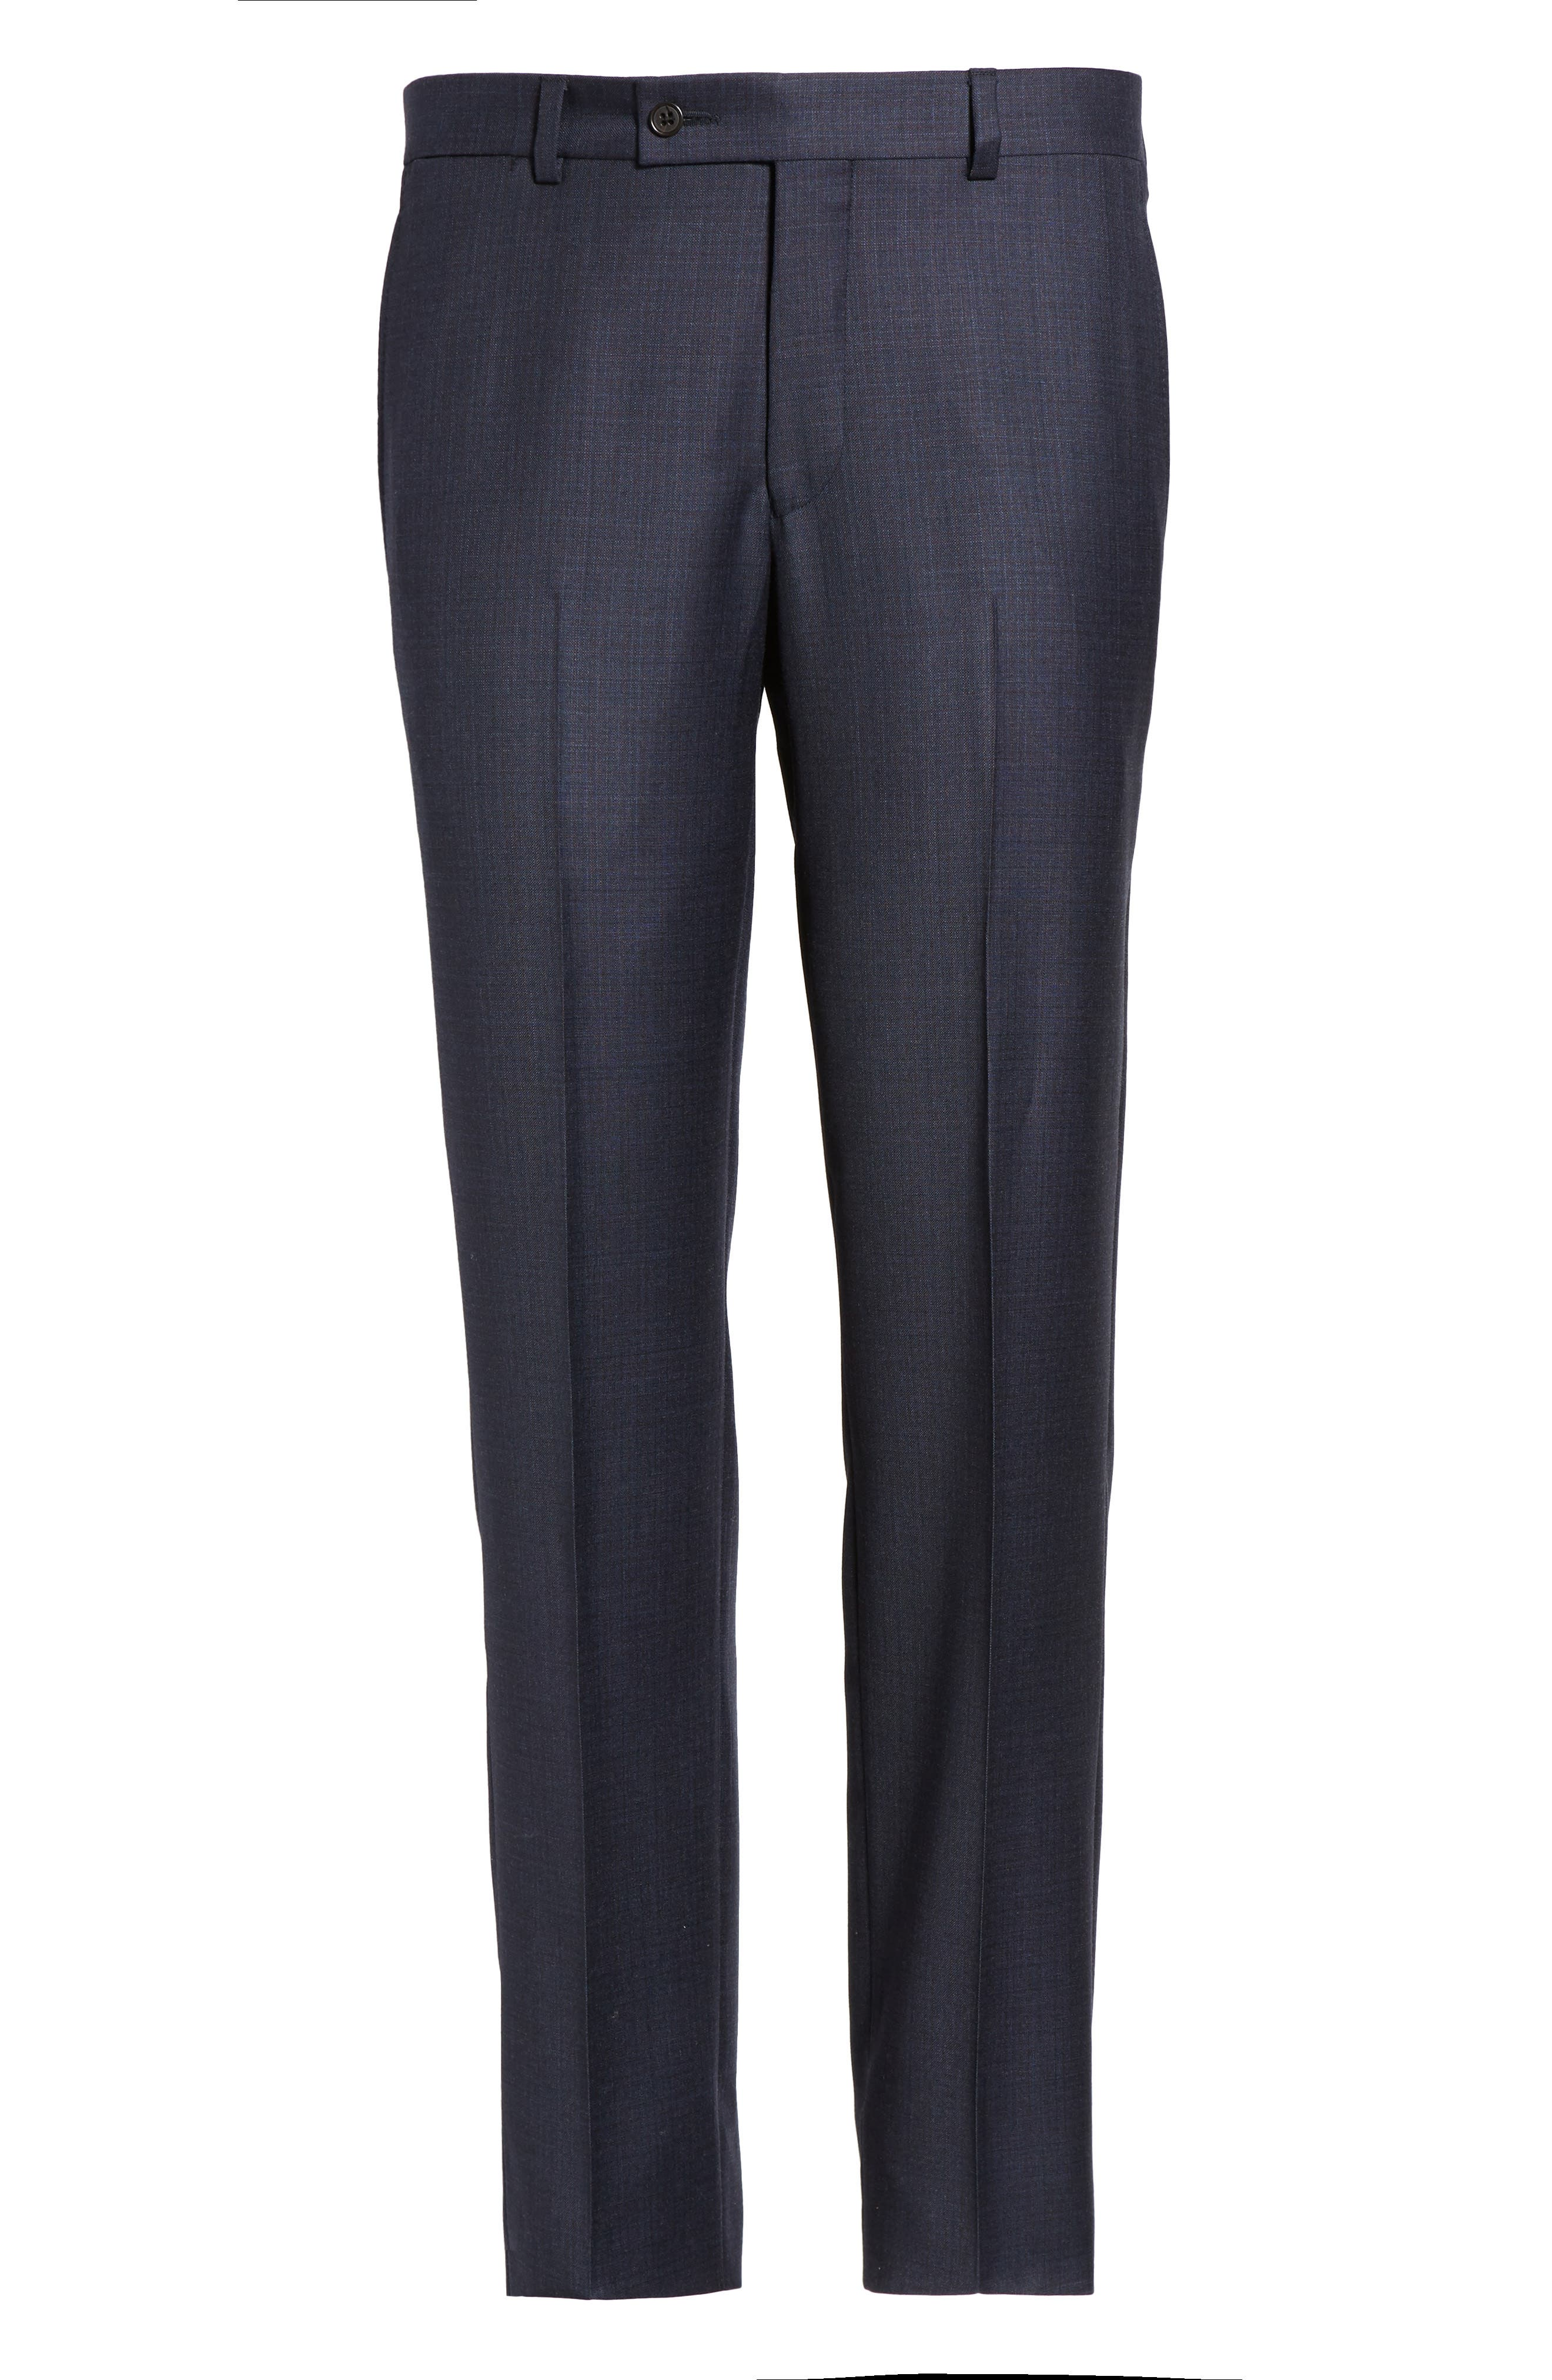 Jefferson Flat Front Solid Wool Trousers,                             Alternate thumbnail 6, color,                             Navy